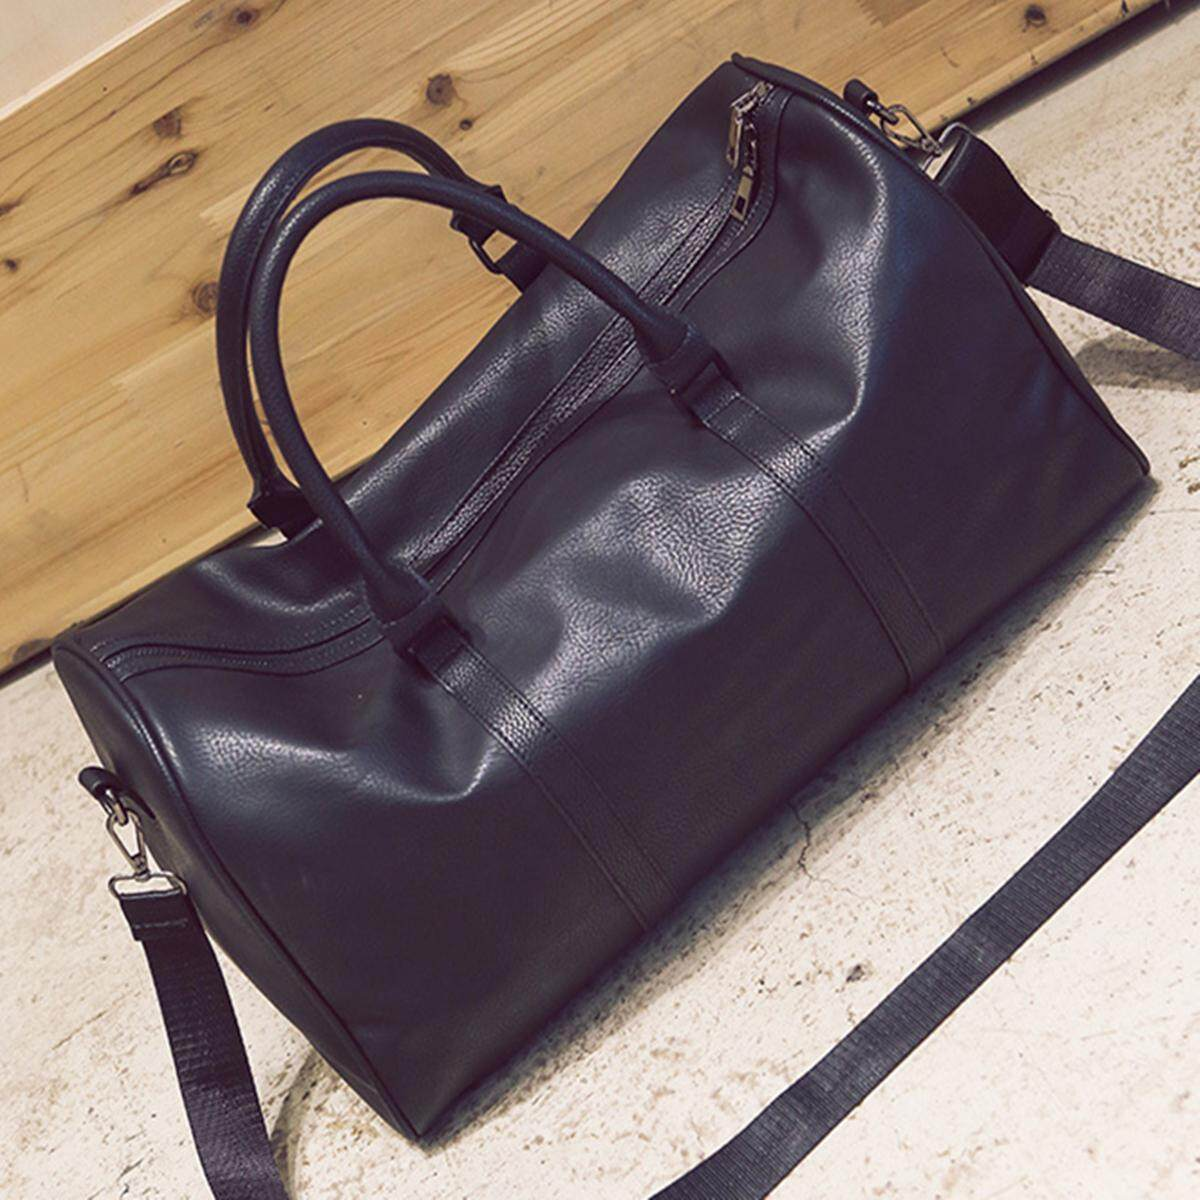 Women Men Leather Outdoor Large Gym Duffel Bag Travel Weekend Overnight Luggage Black - Intl By Paidbang.